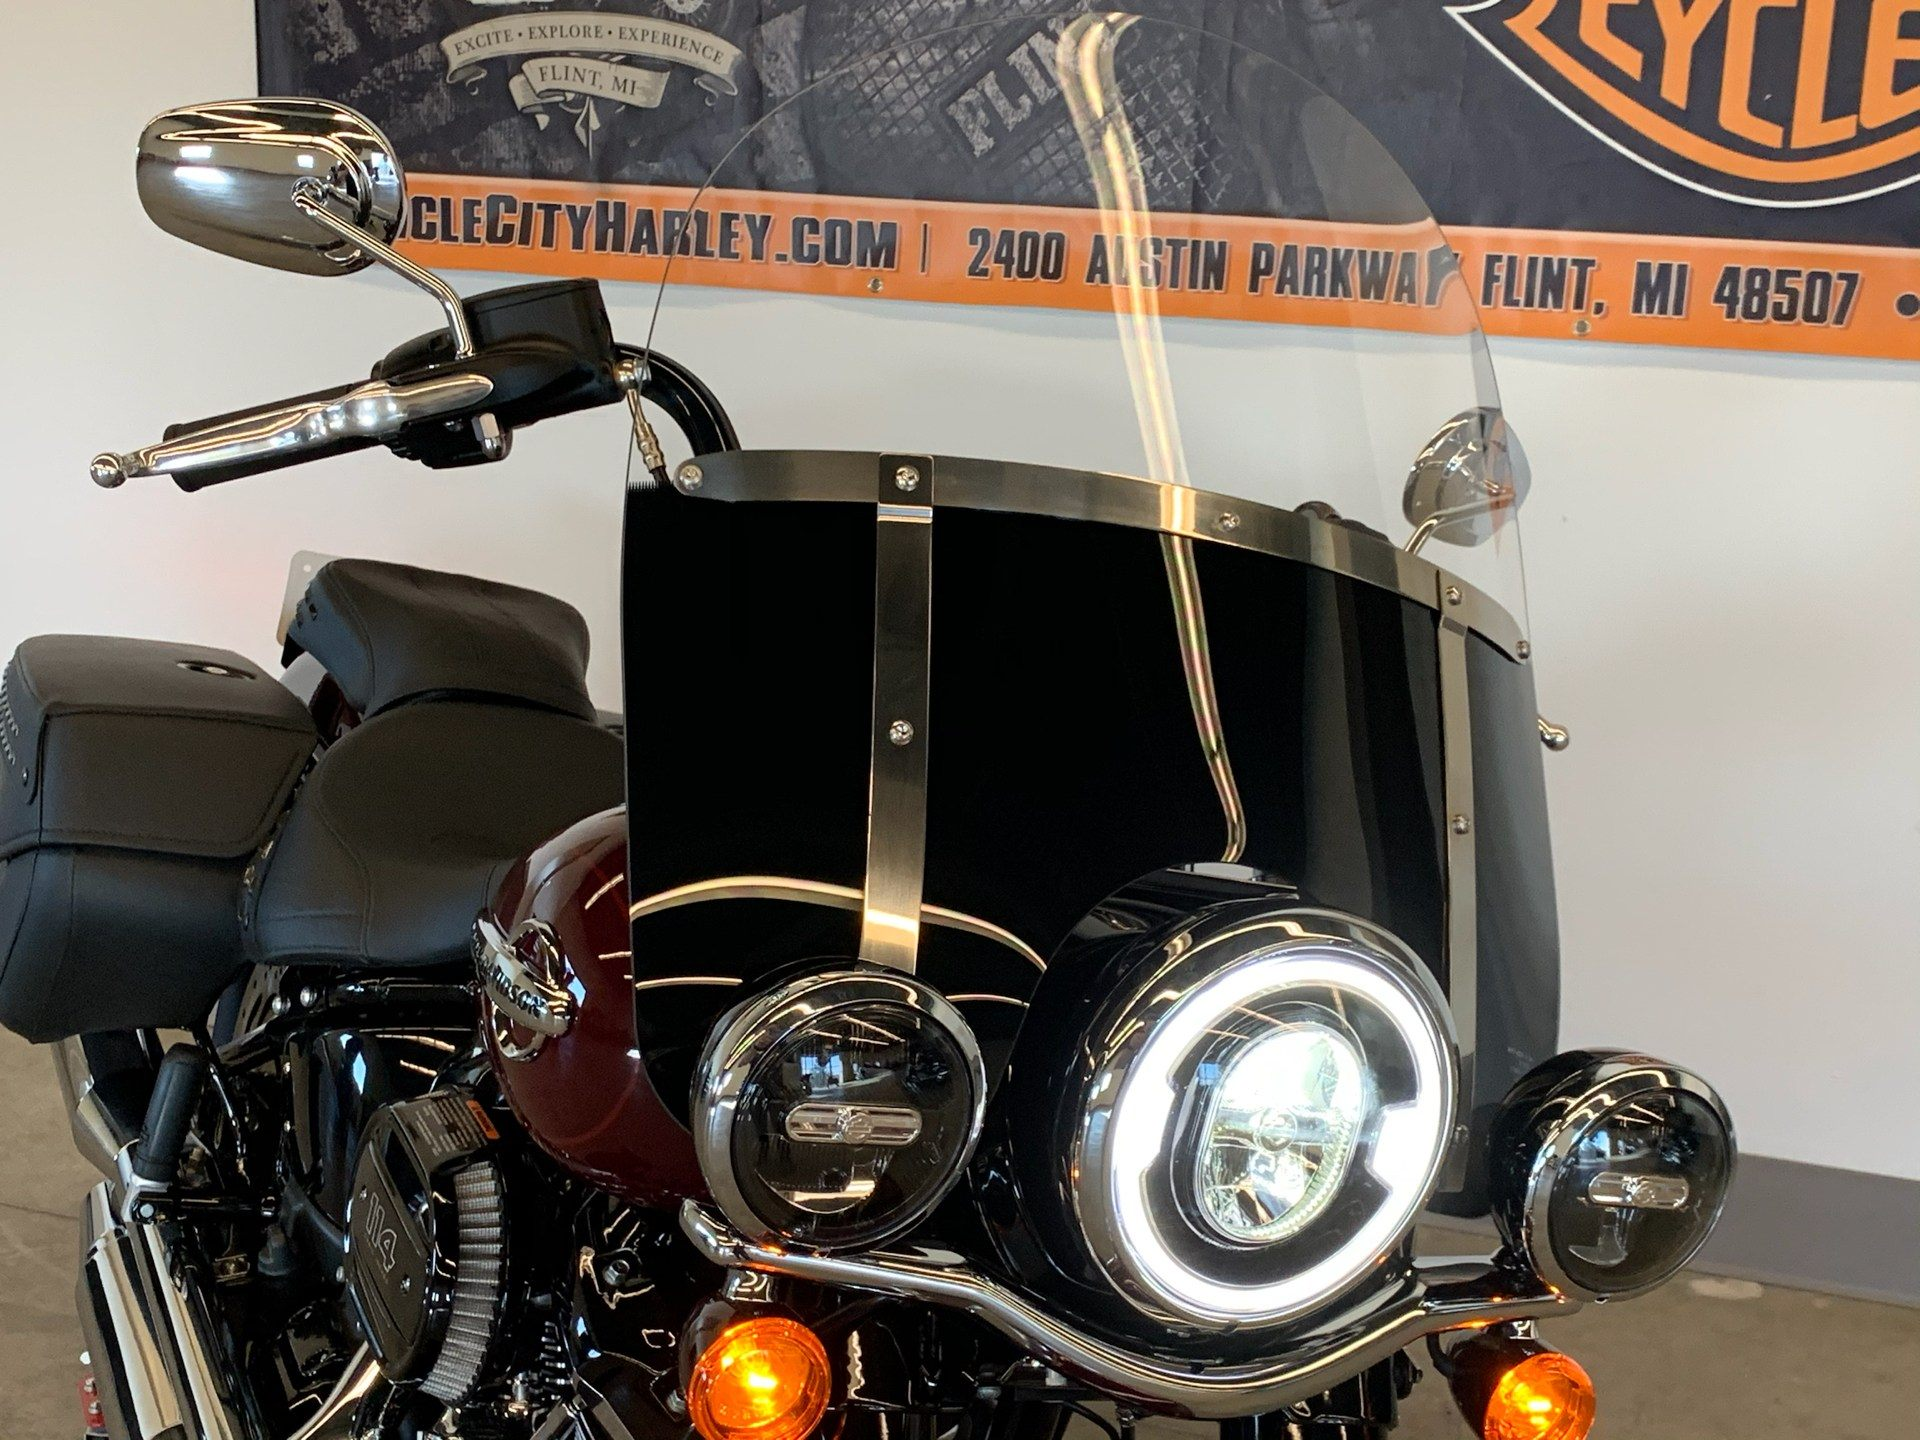 2020 Harley-Davidson Heritage Classic 114 in Flint, Michigan - Photo 10